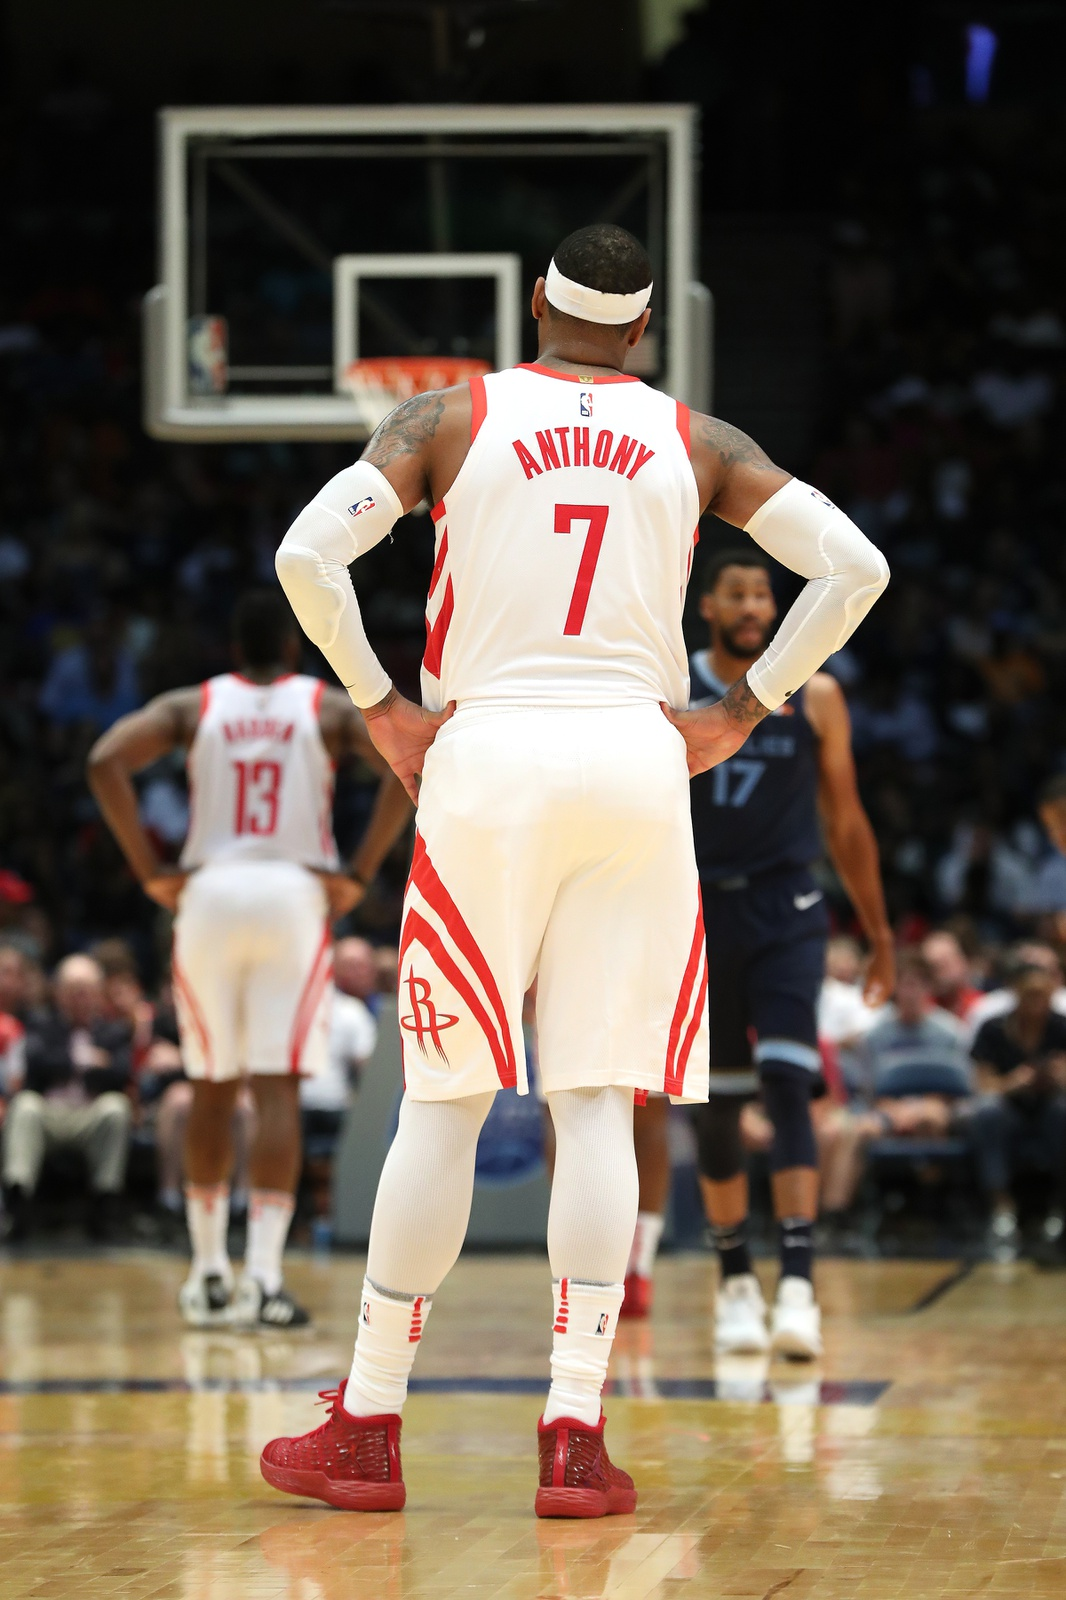 e0d7c1d35179 Carmelo Anthony  7 of the Houston Rockets looks on during the game against  the Memphis